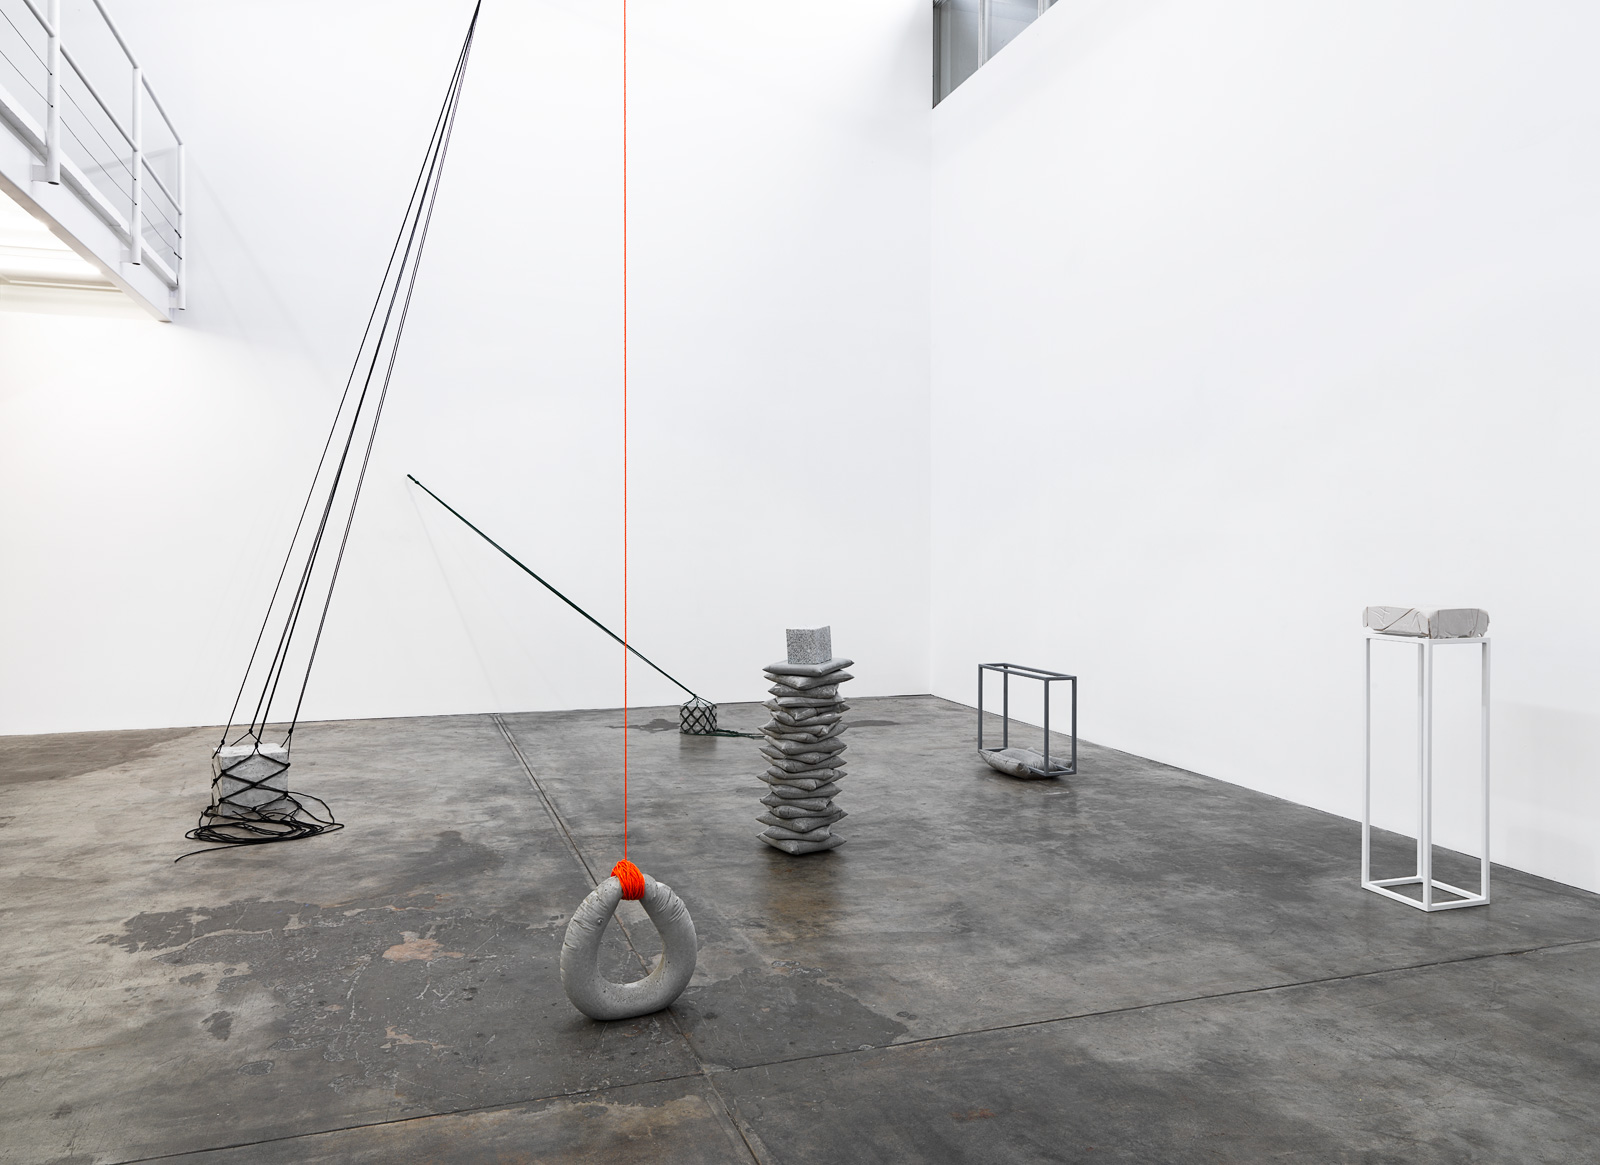 Anna Horne,  CACSA Contemporary 2015,  Installation view, Greenaway Art Gallery, Adelaide. Photograph by Grant Hancock. Courtesy of the artist and GAG Projects.